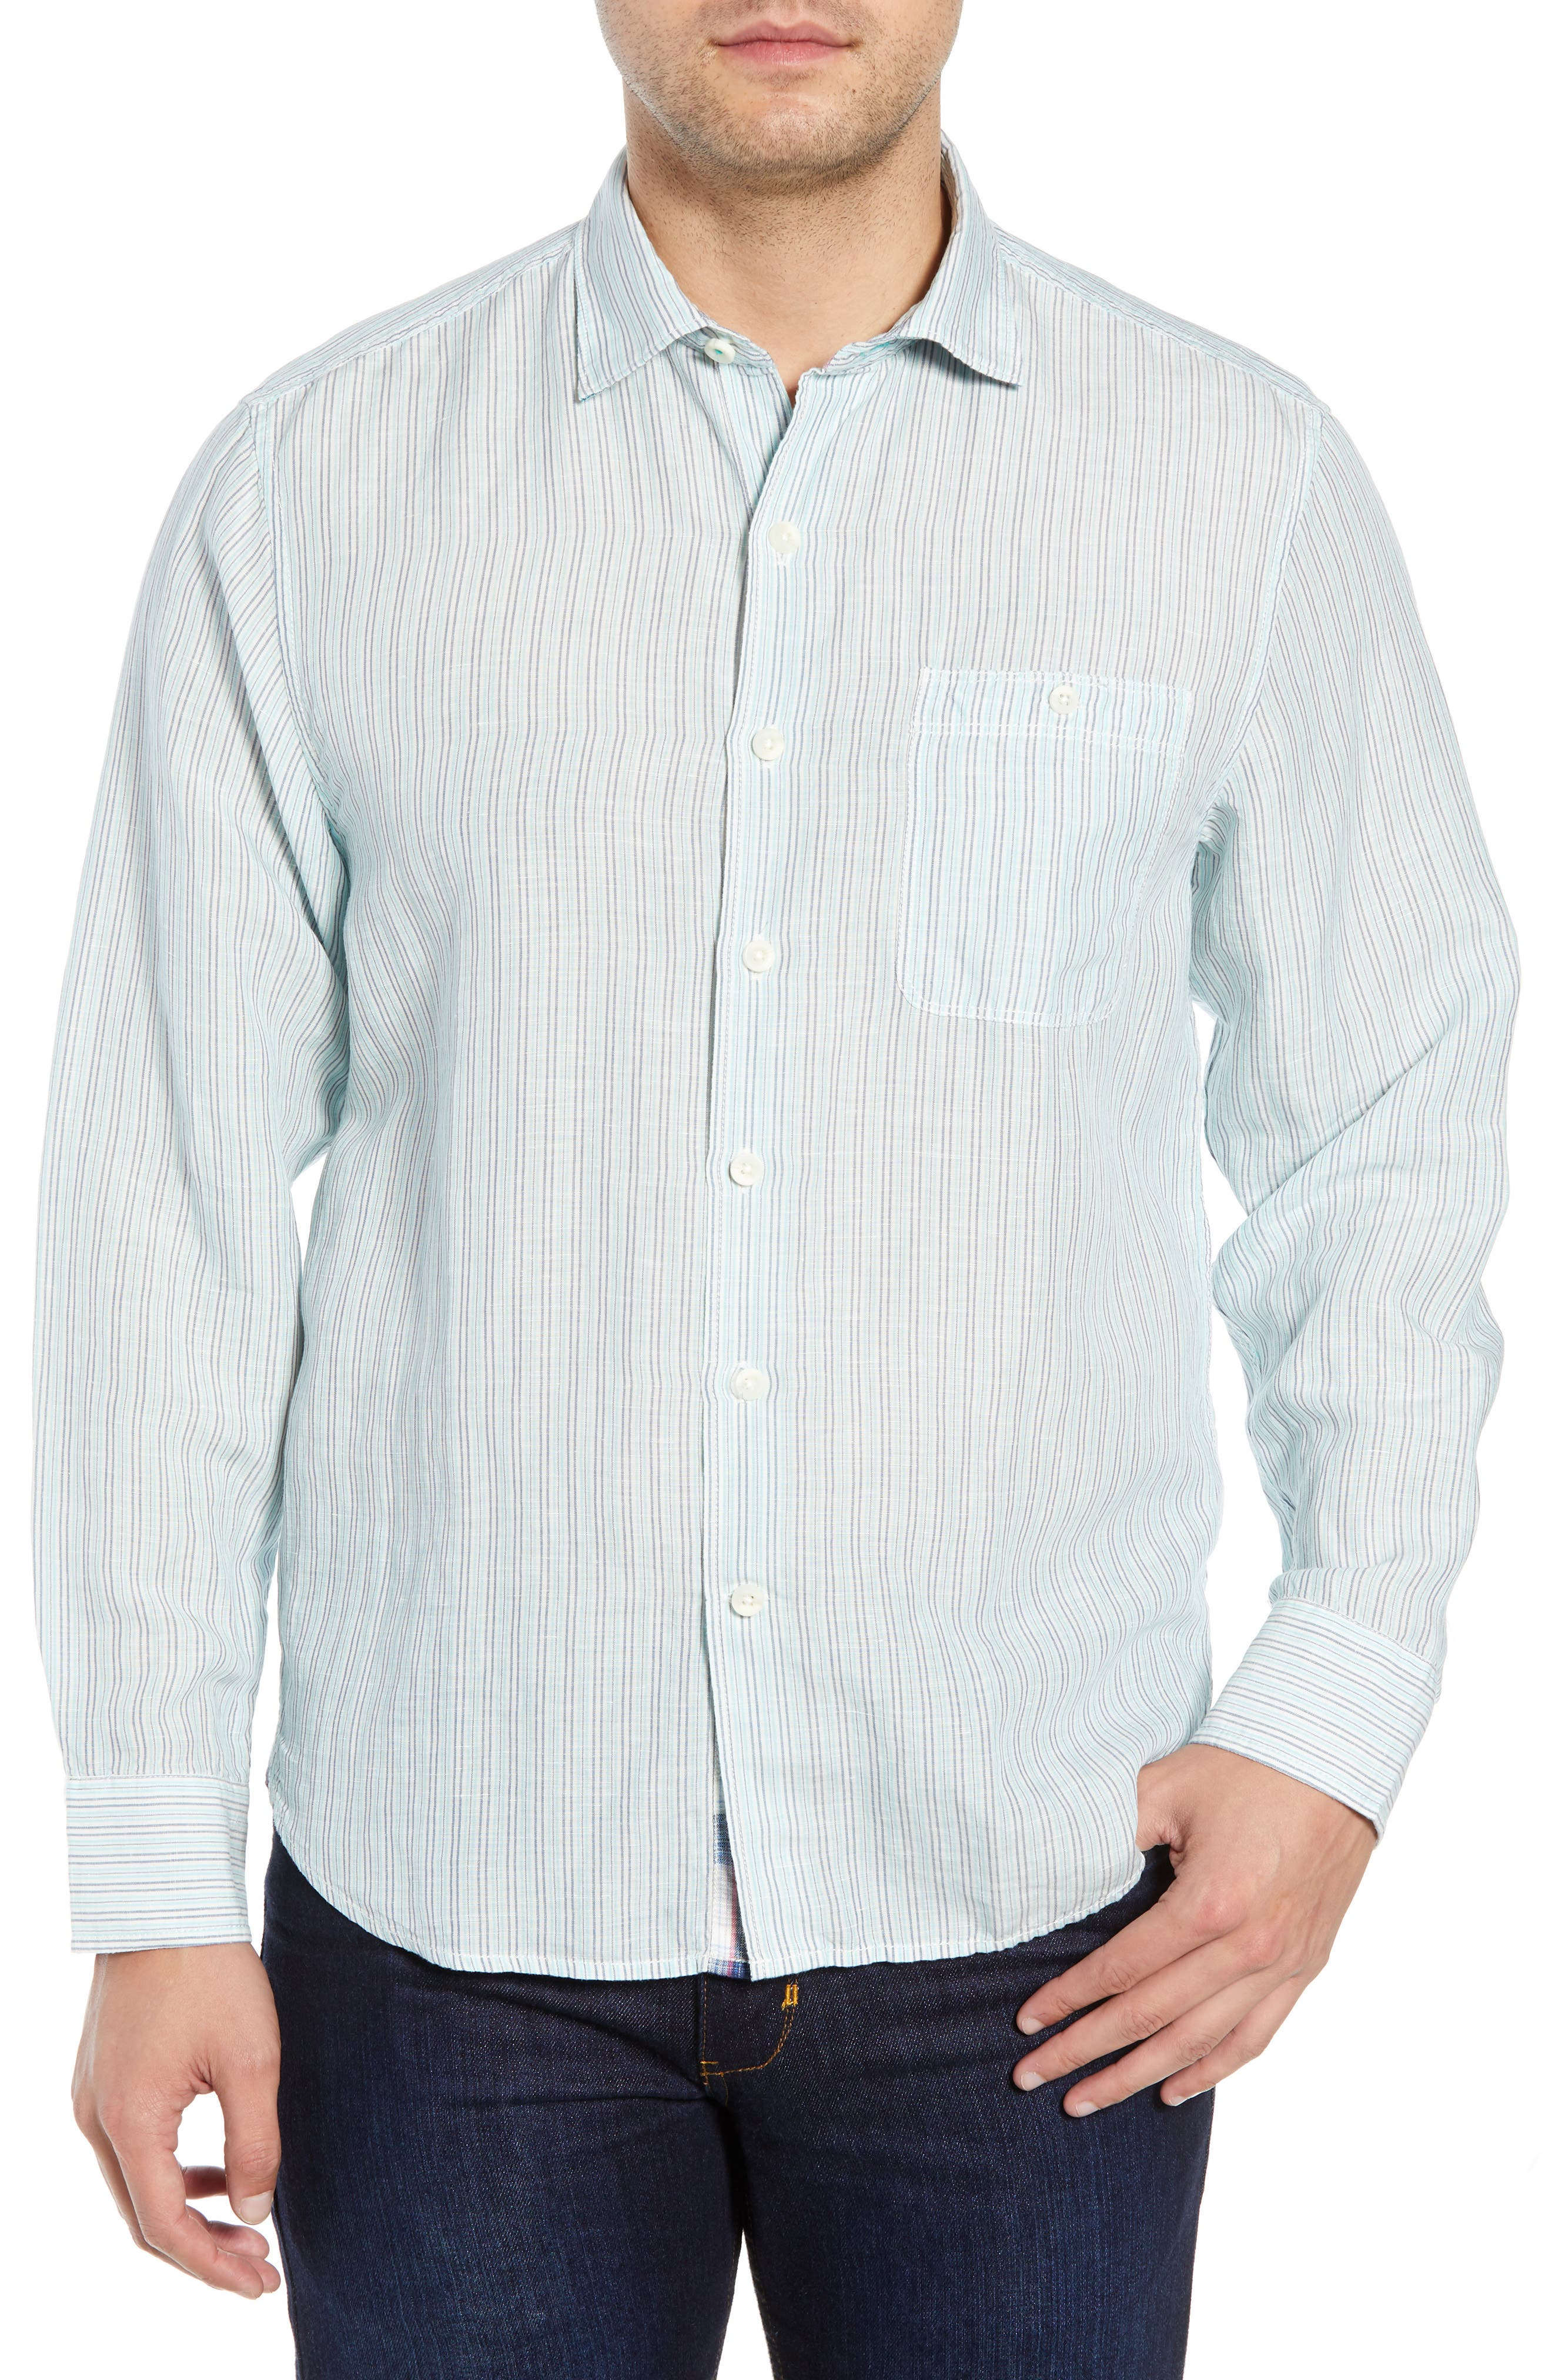 TOMMY BAHAMA Sand Stripe Linen Blend Sport Shirt, Main, color, BLUE SWELL